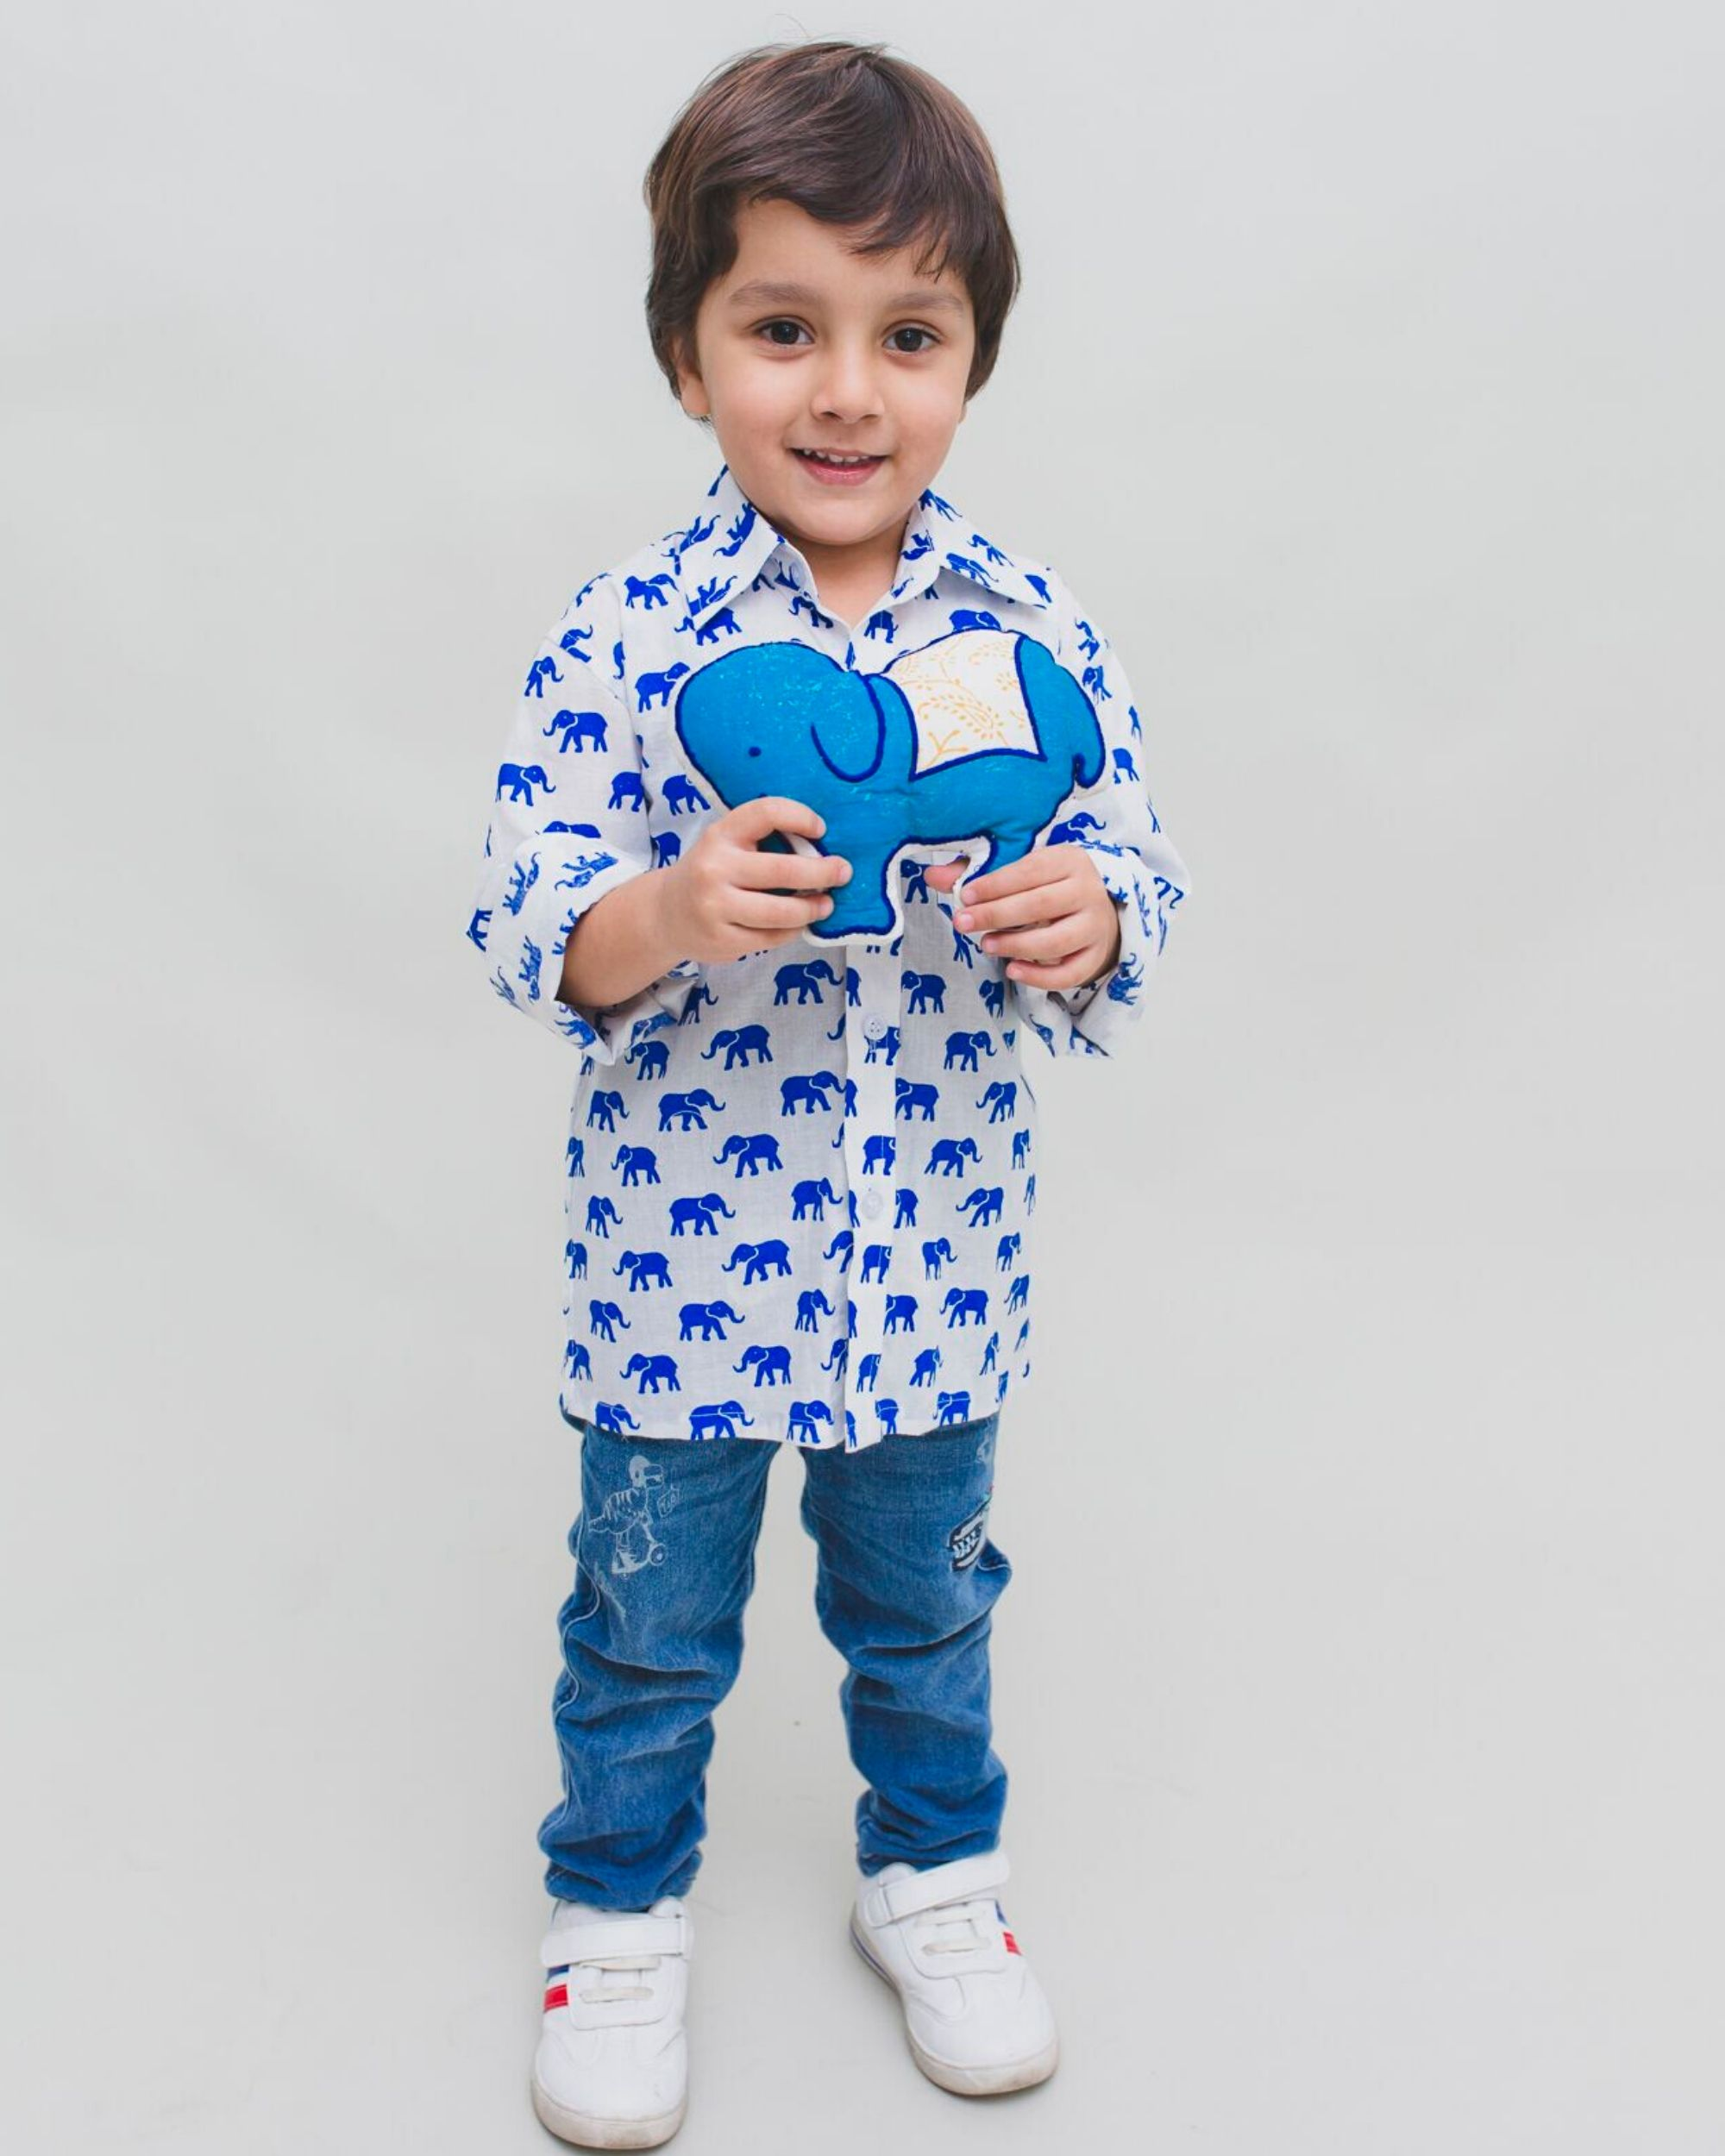 White and blue elephant printed shirt